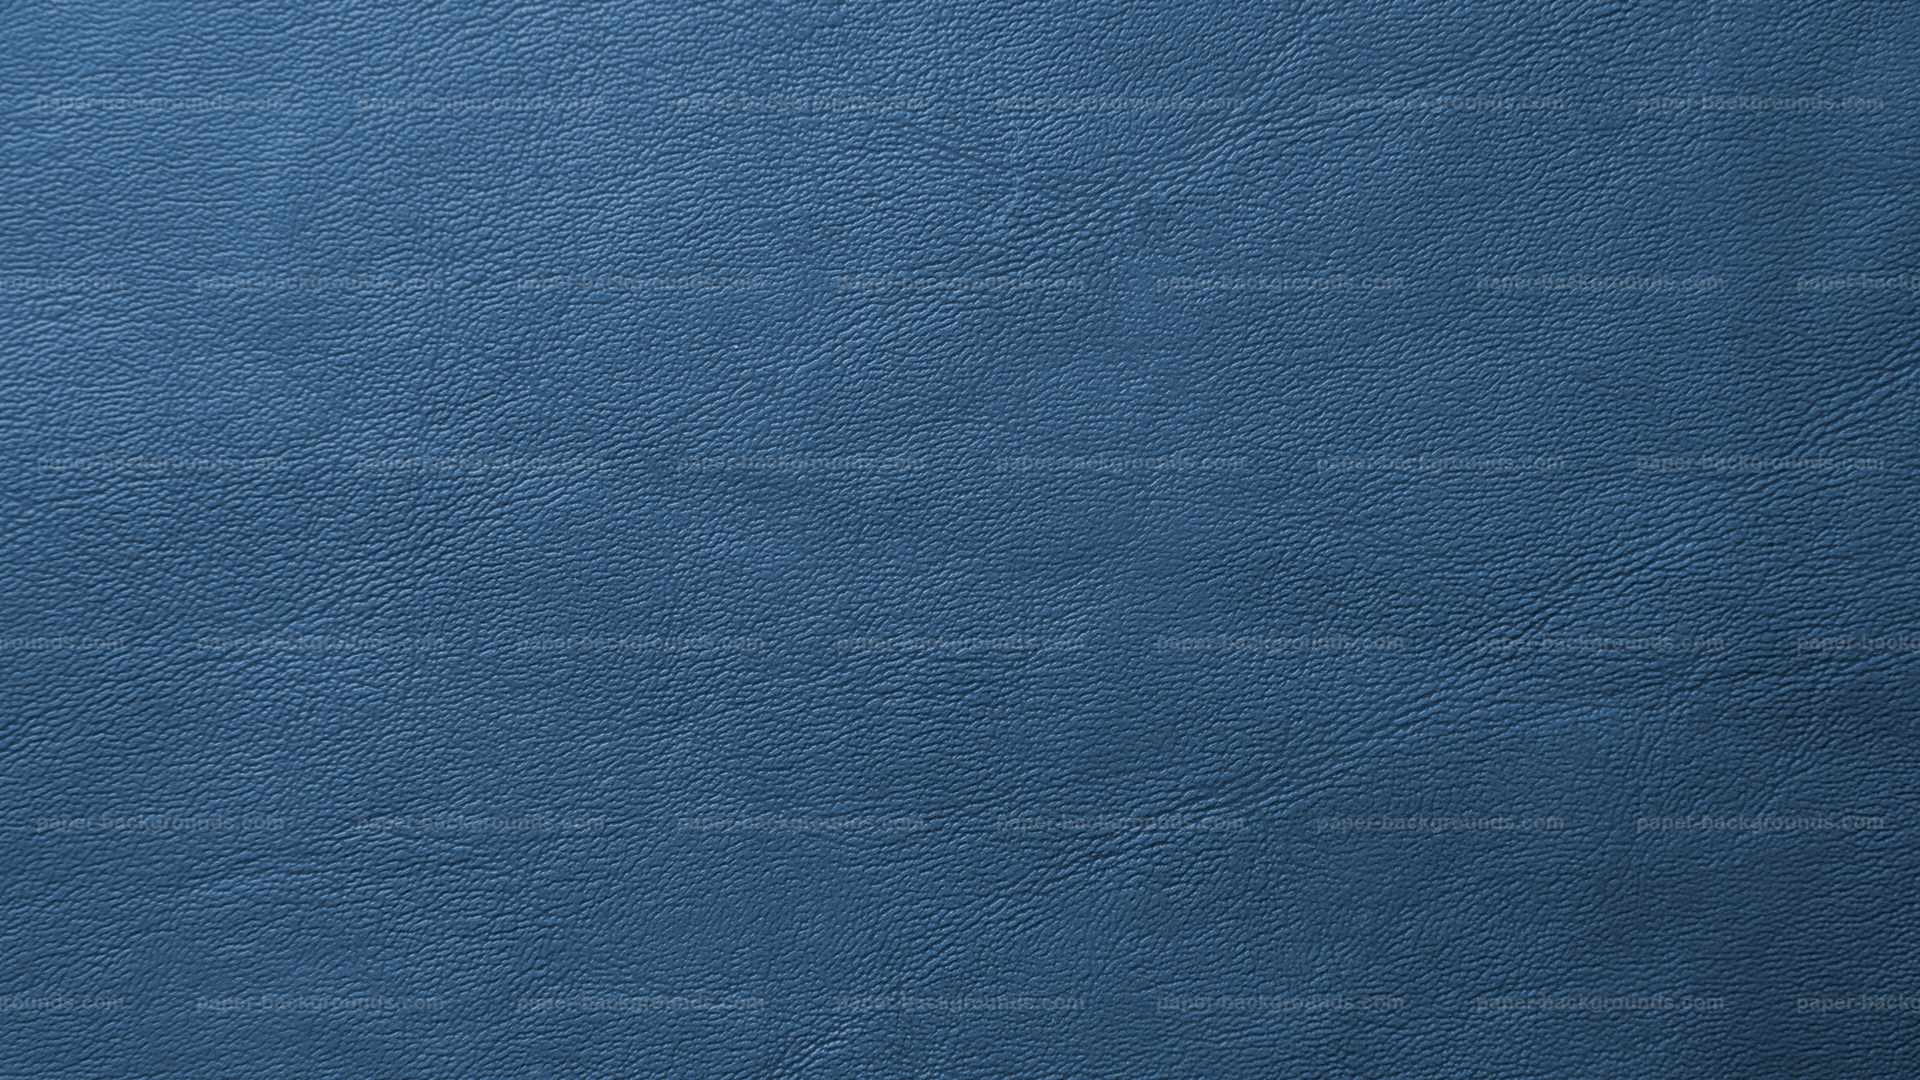 Blue Leather Texture HD